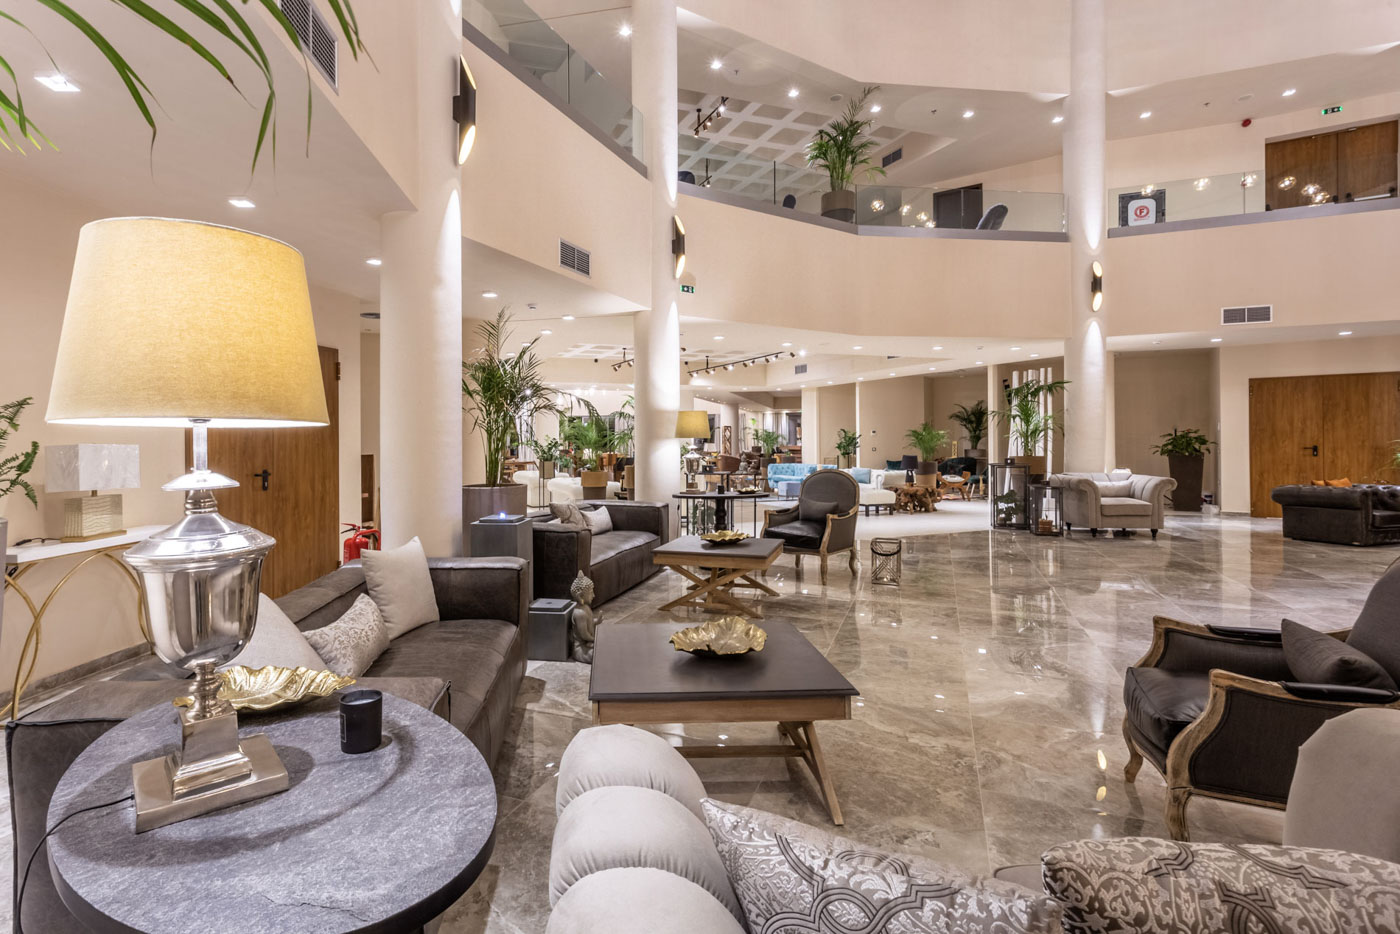 Elysian luxury hotel and spa Kalamata interior